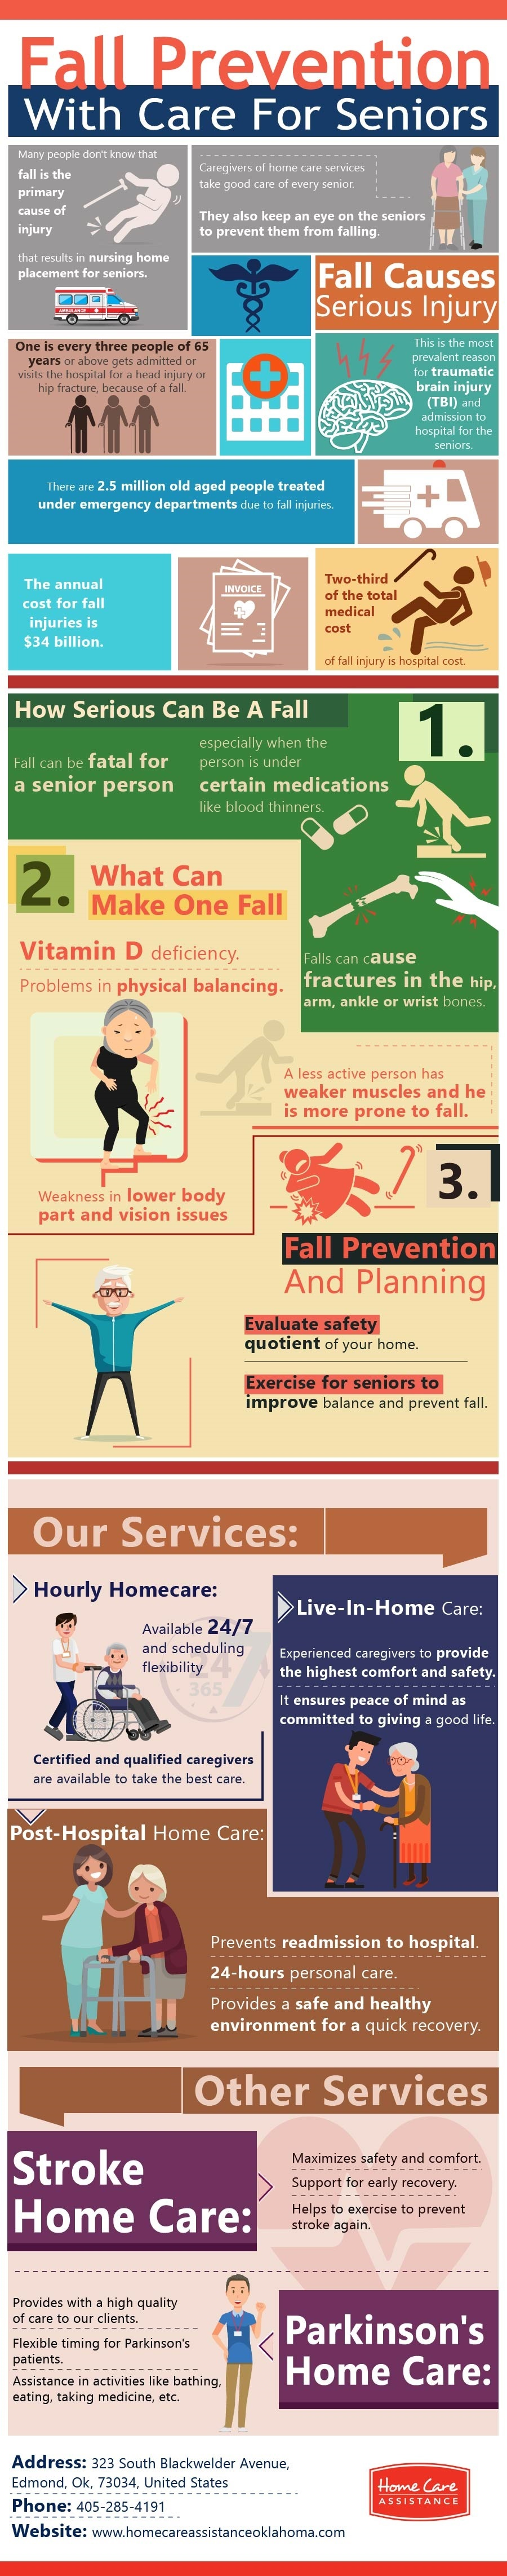 Fall Prevention With Care For Seniors